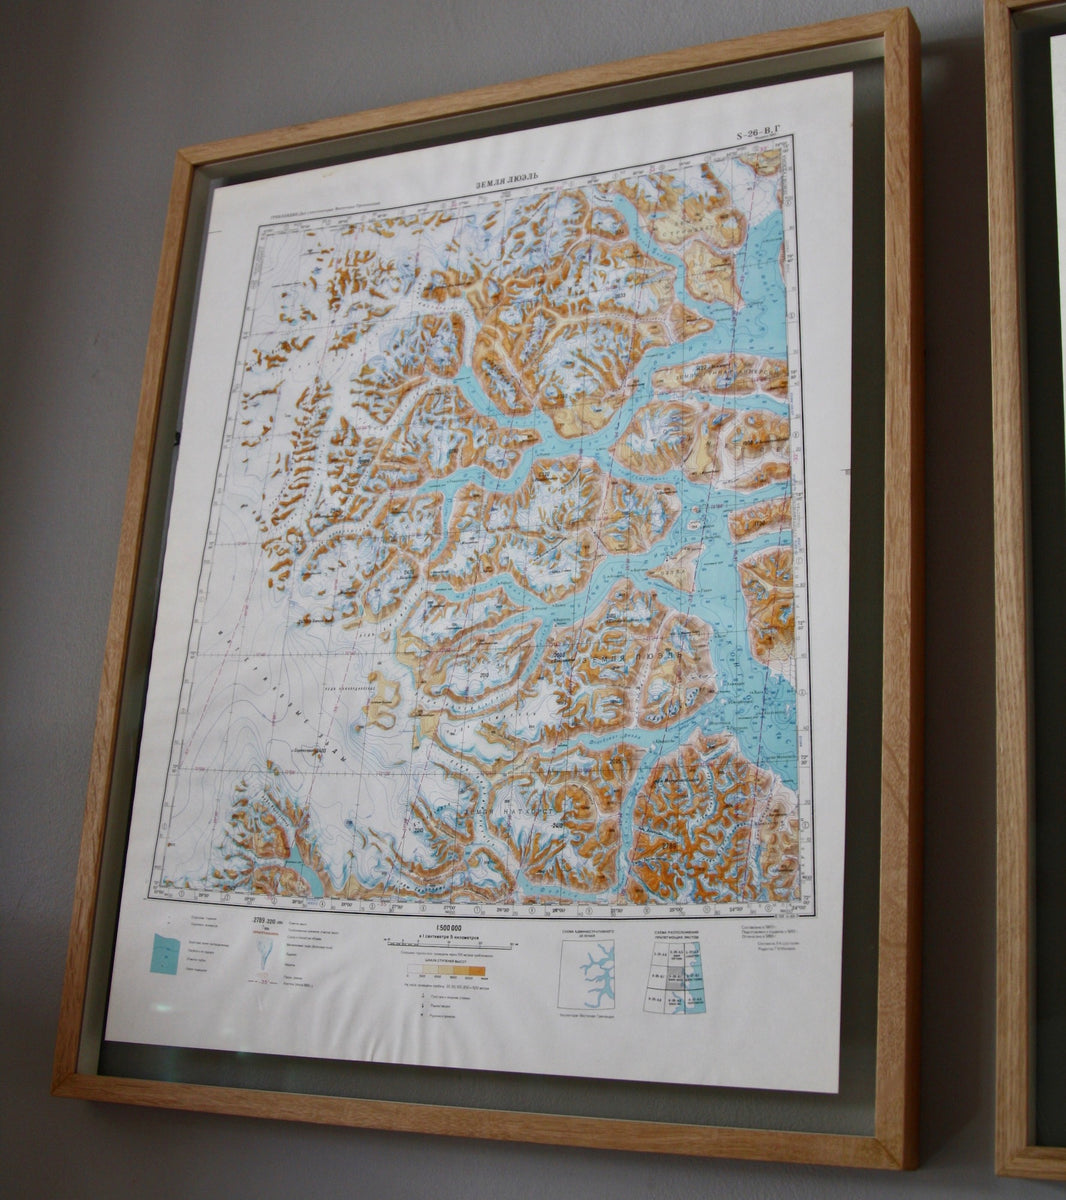 Scandinavian Beautifully Framed 1960s Soviet Maps of Greenland - Image 6